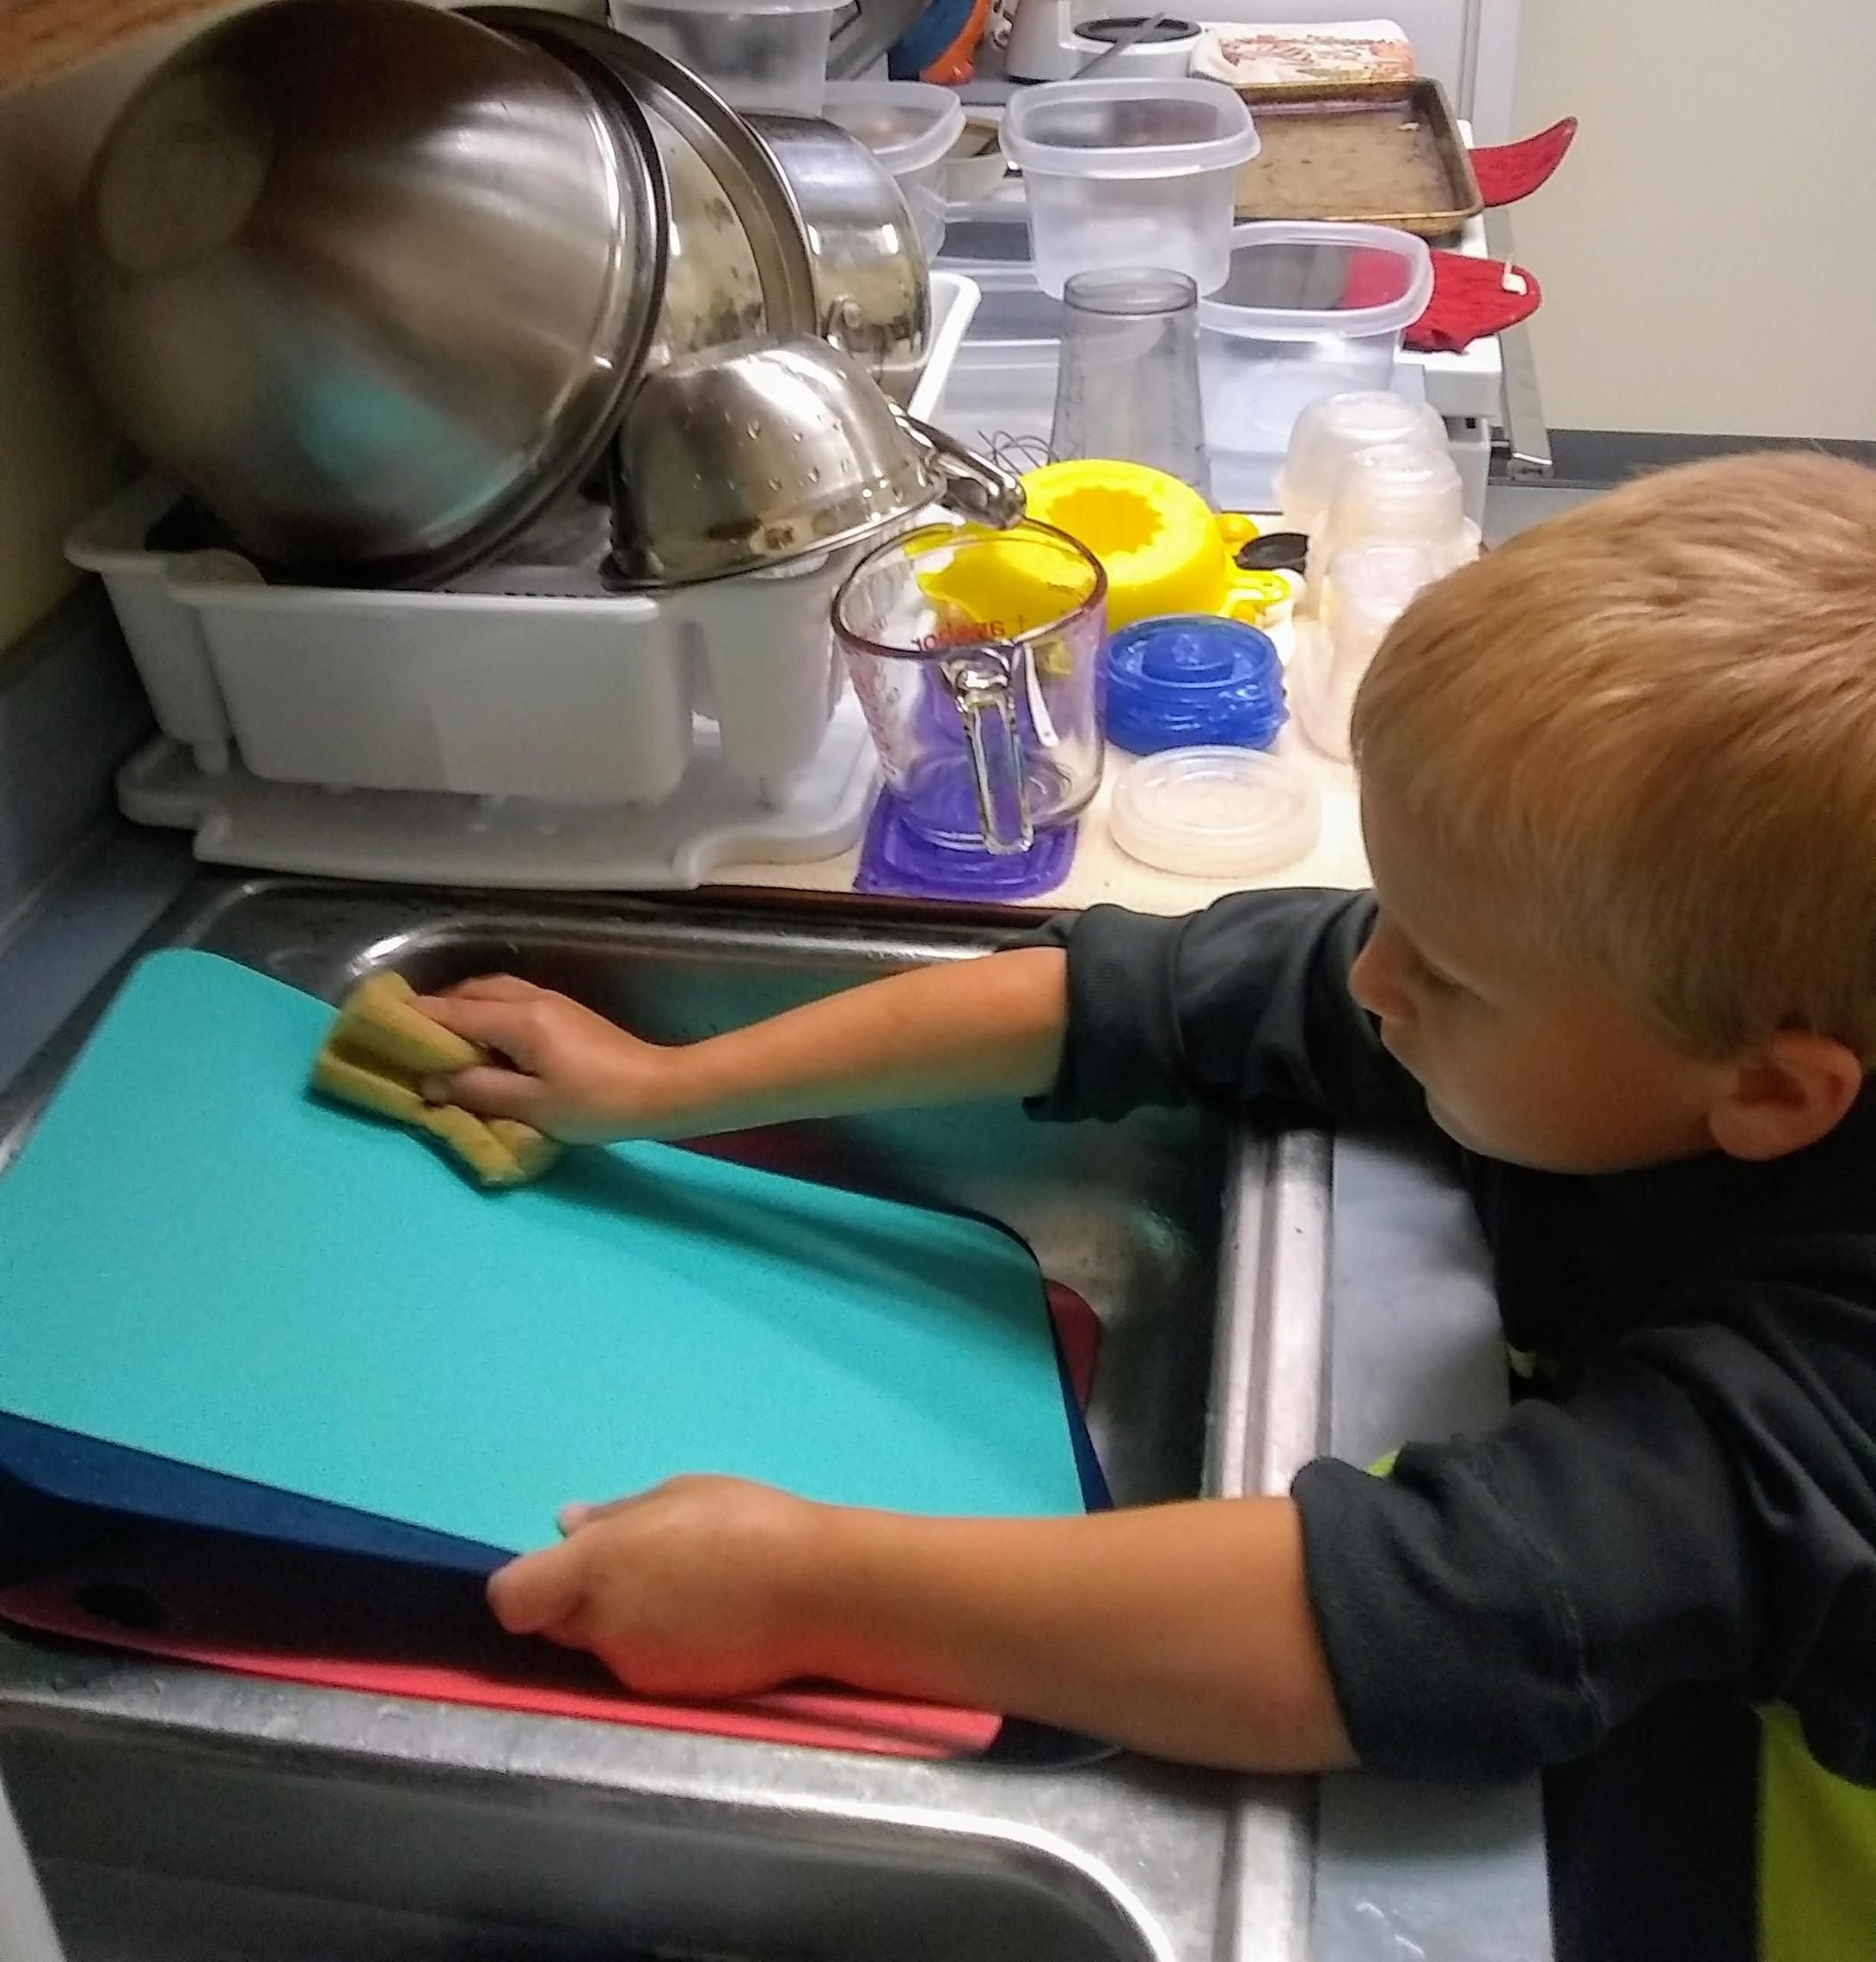 a child washing dishes